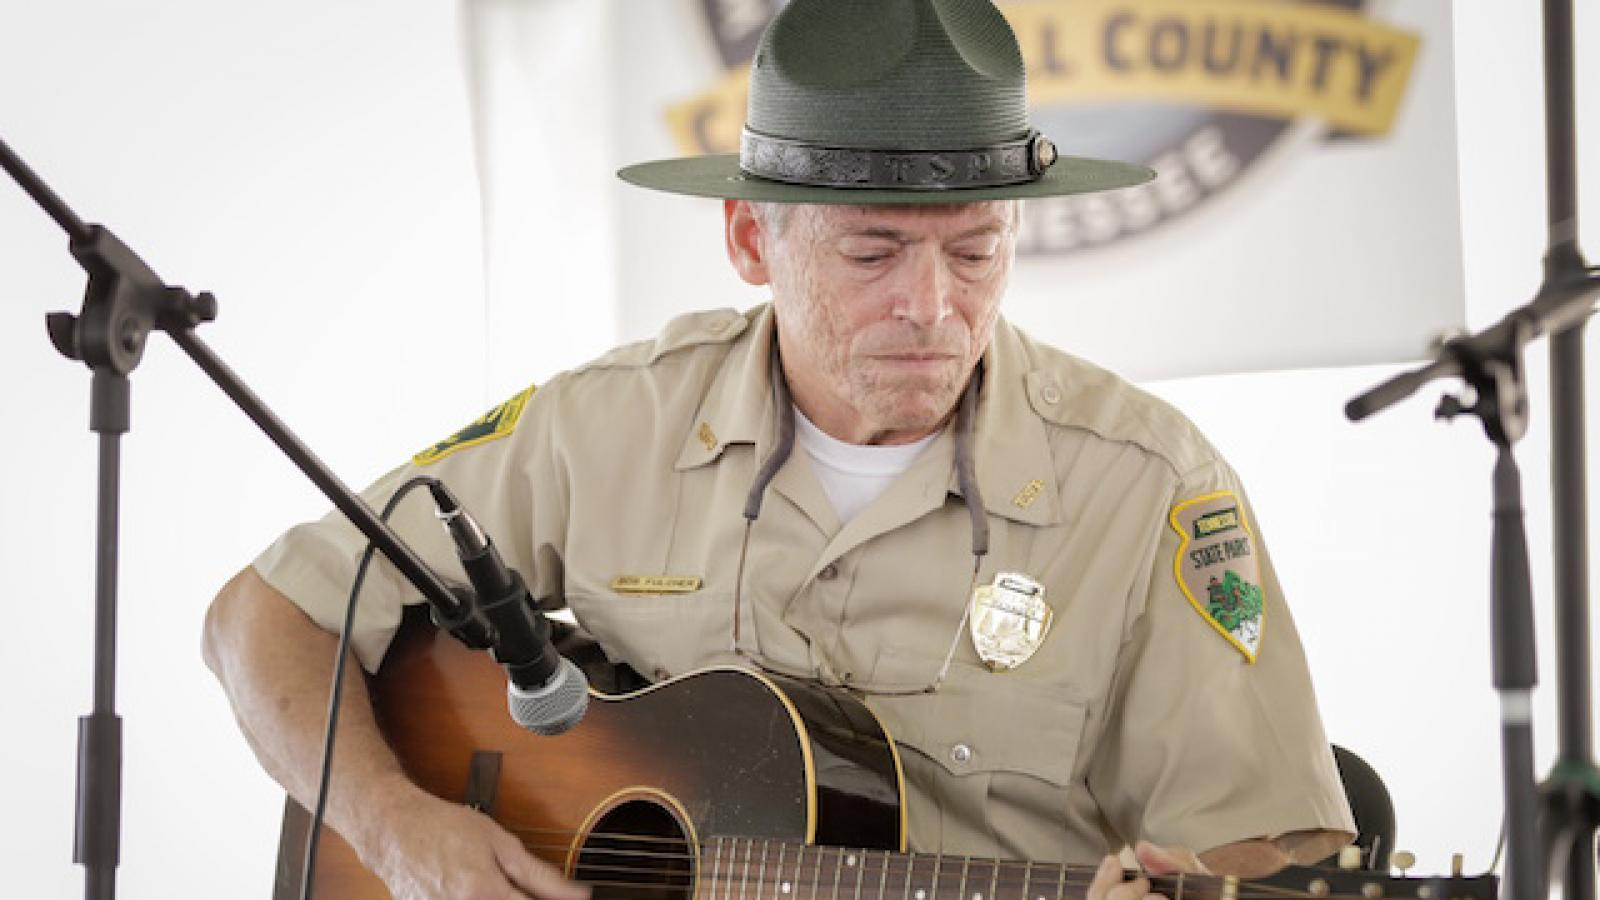 Bob Fulcher in his state parks uniform sits on a chair playing the guitar